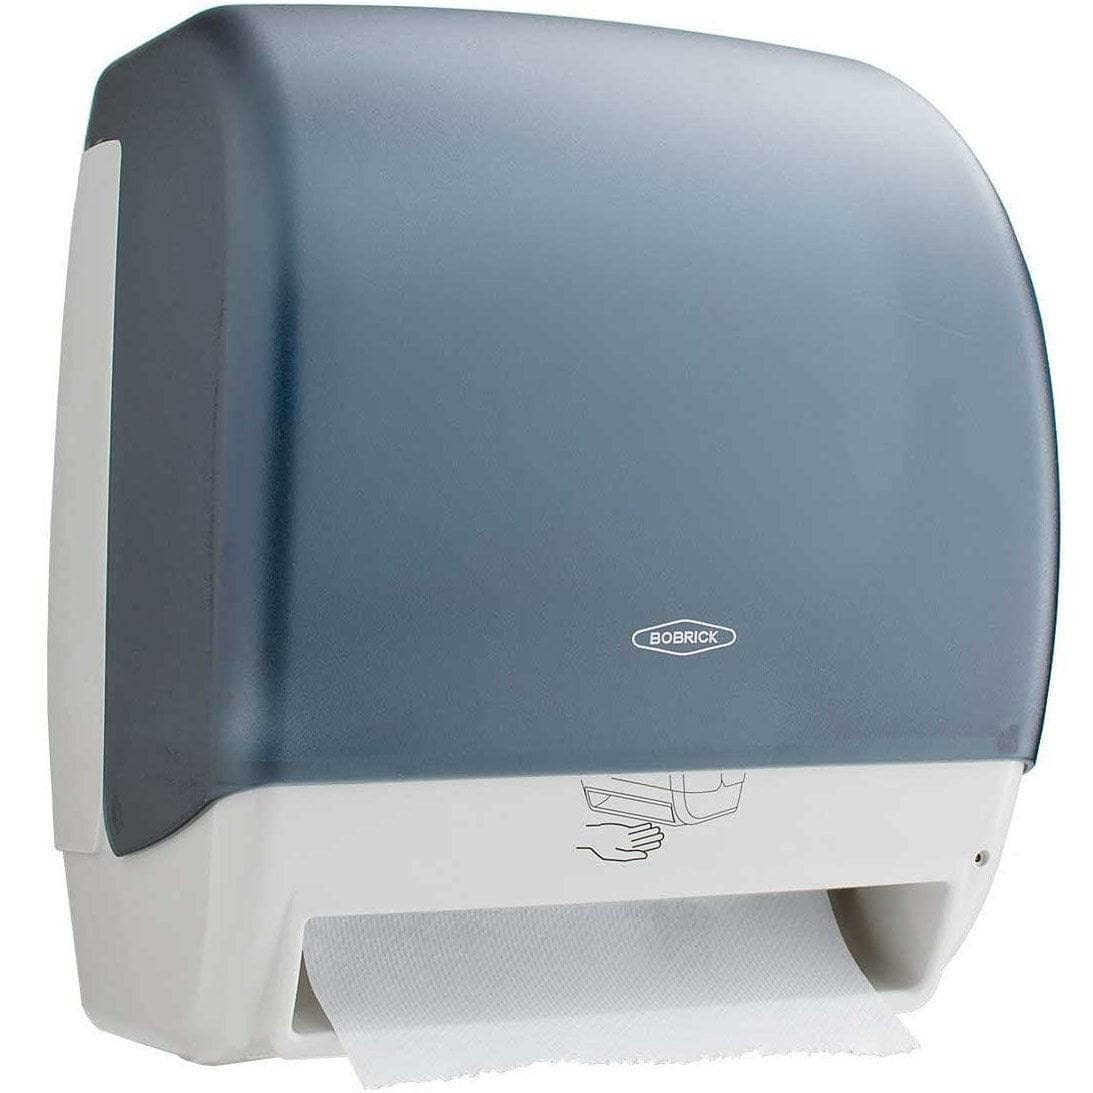 Bobrick B-72974 Automatic Commercial Paper Towel Dispenser, Surface-Mounted, Plastic